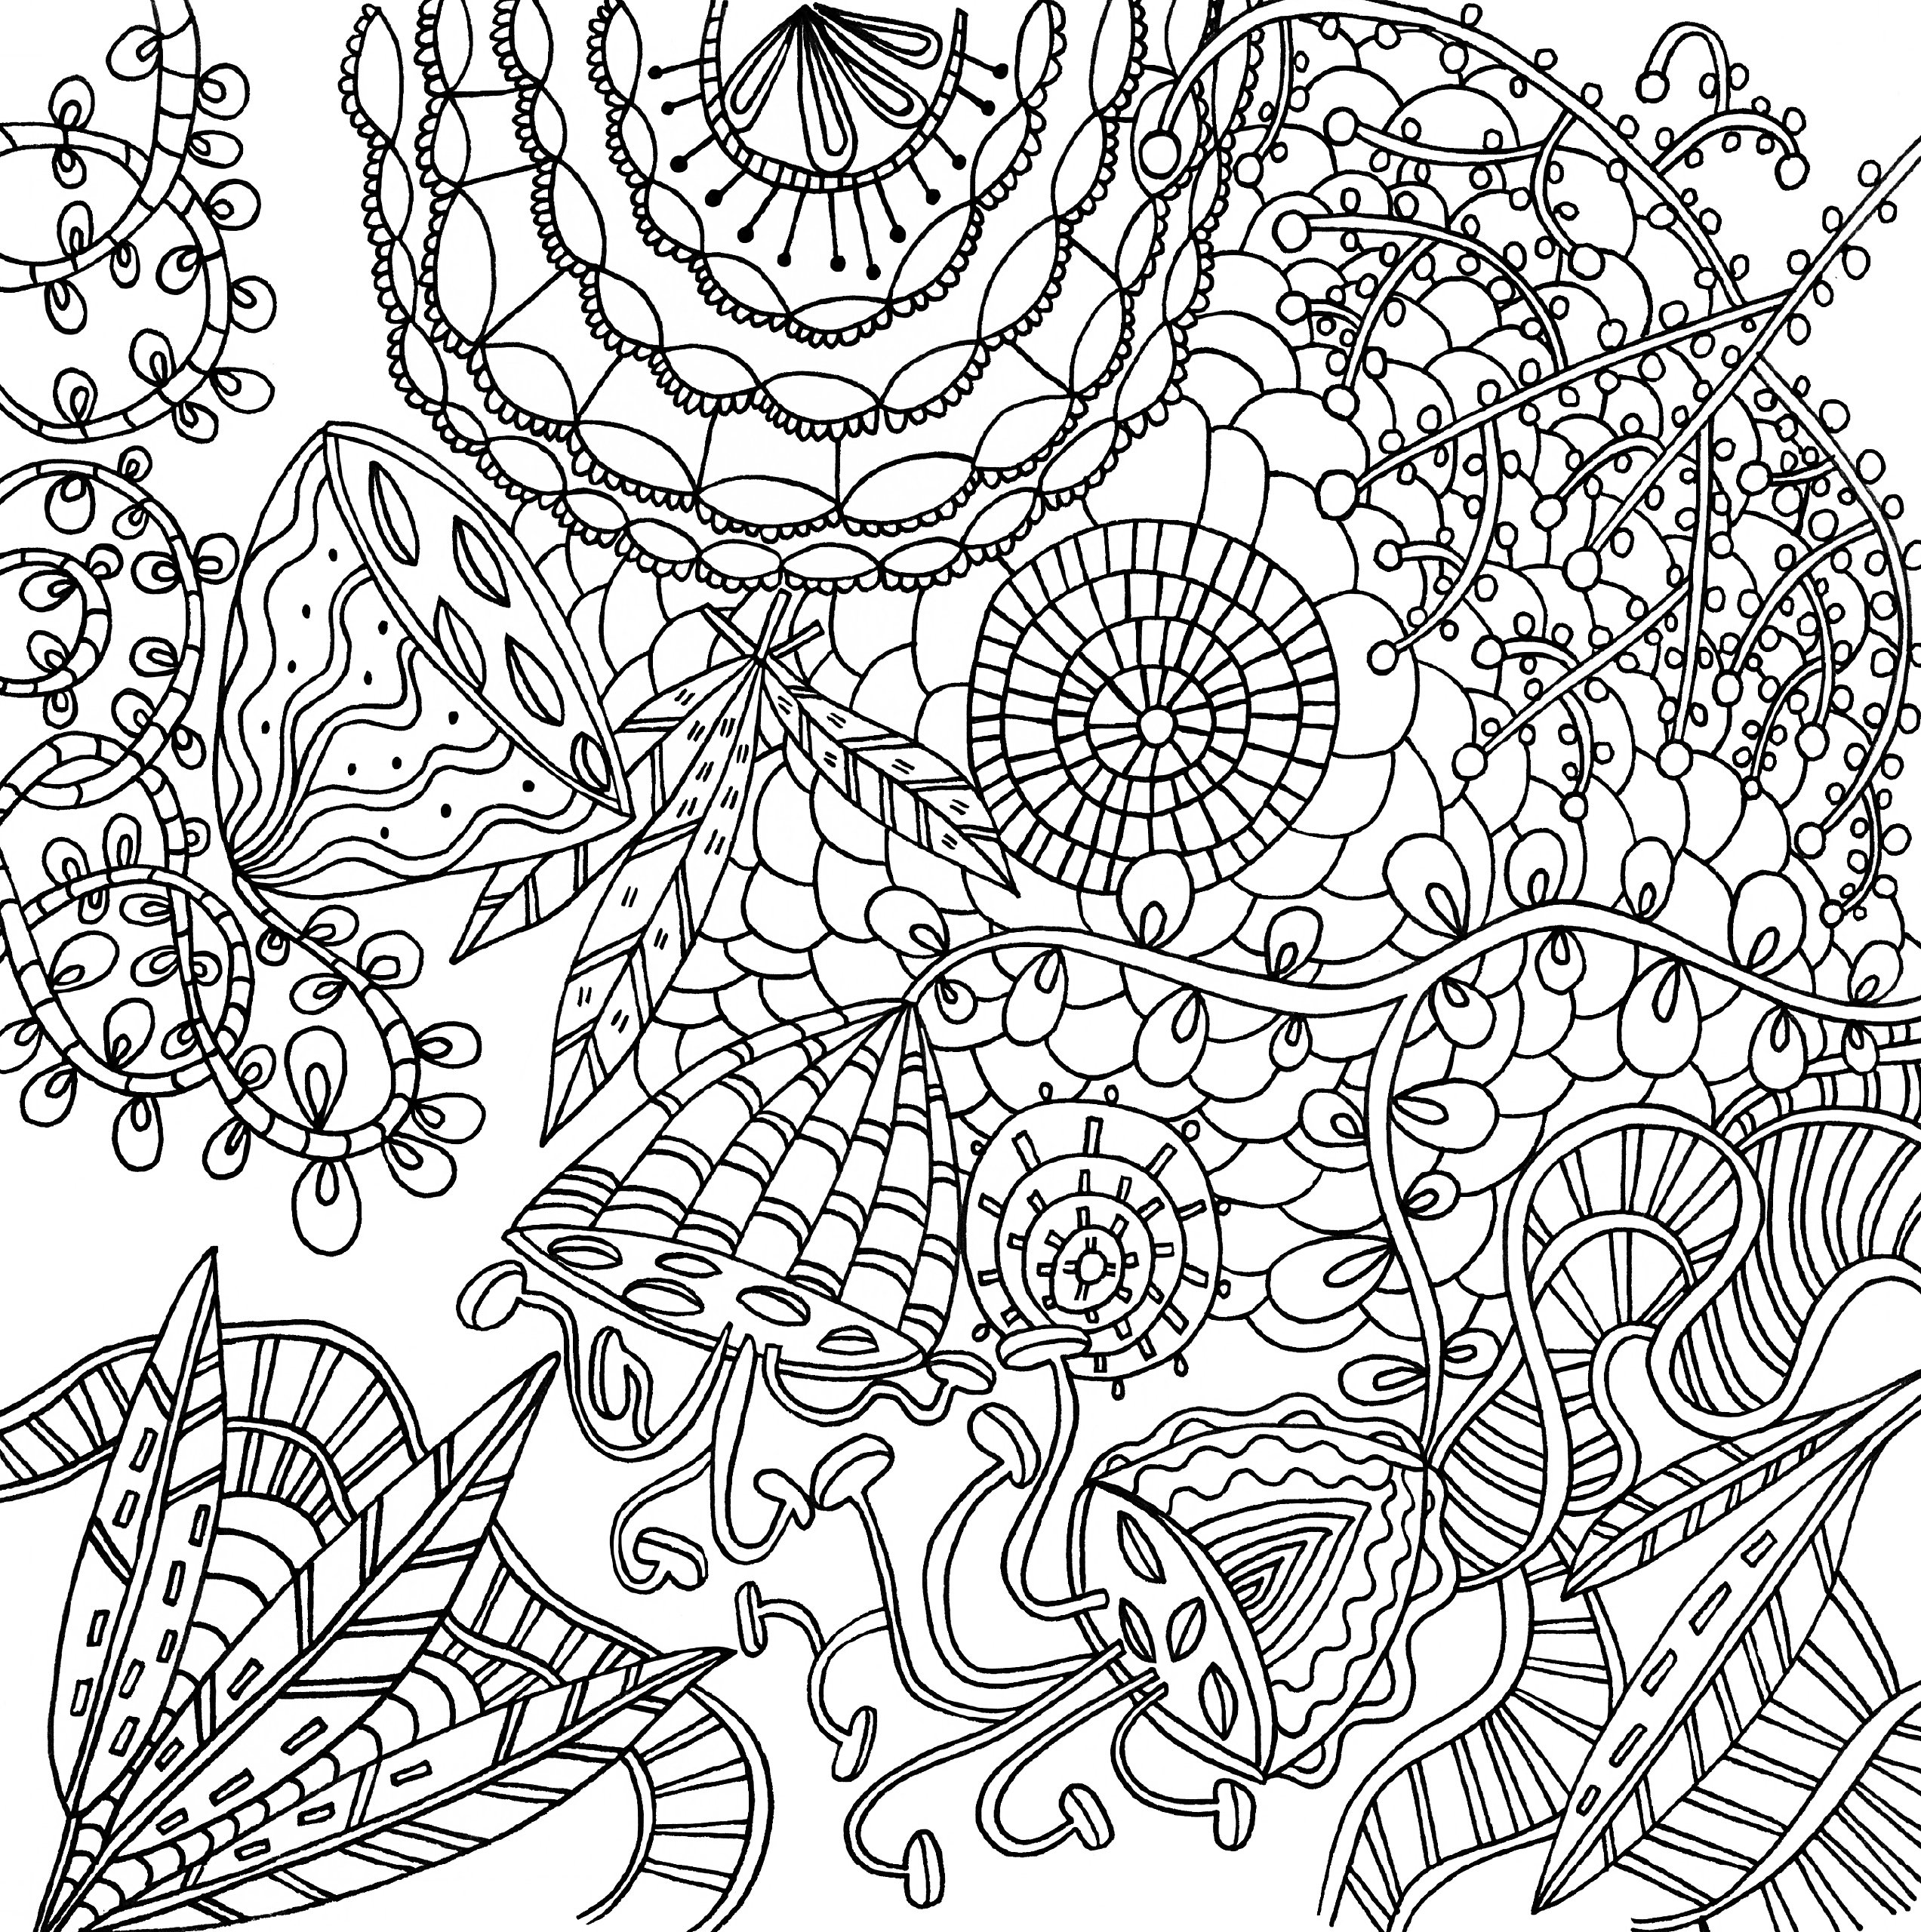 Serenity Adult Coloring Book 31 Stress Relieving Designs Studio Series Artists Peter Pauper Press 9781441320070 Amazon Books